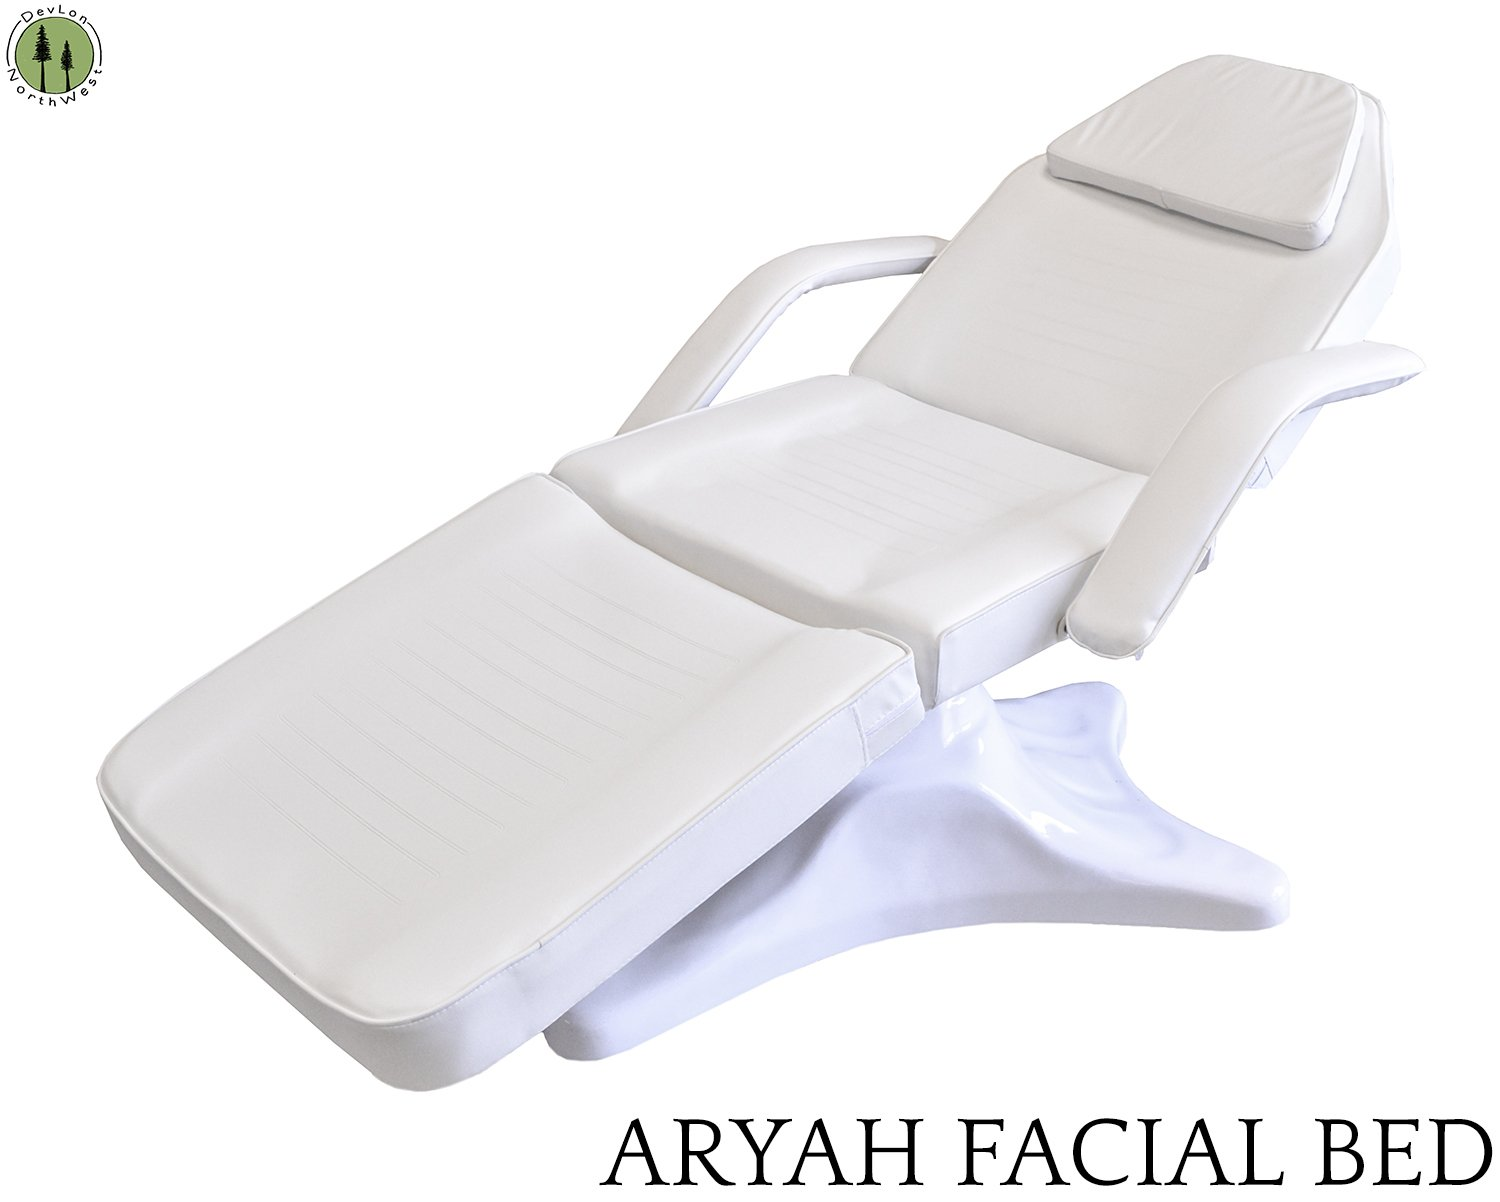 Facial Bed Chair Off White Hydraulic Gas Lift Beauty Salon Equipment